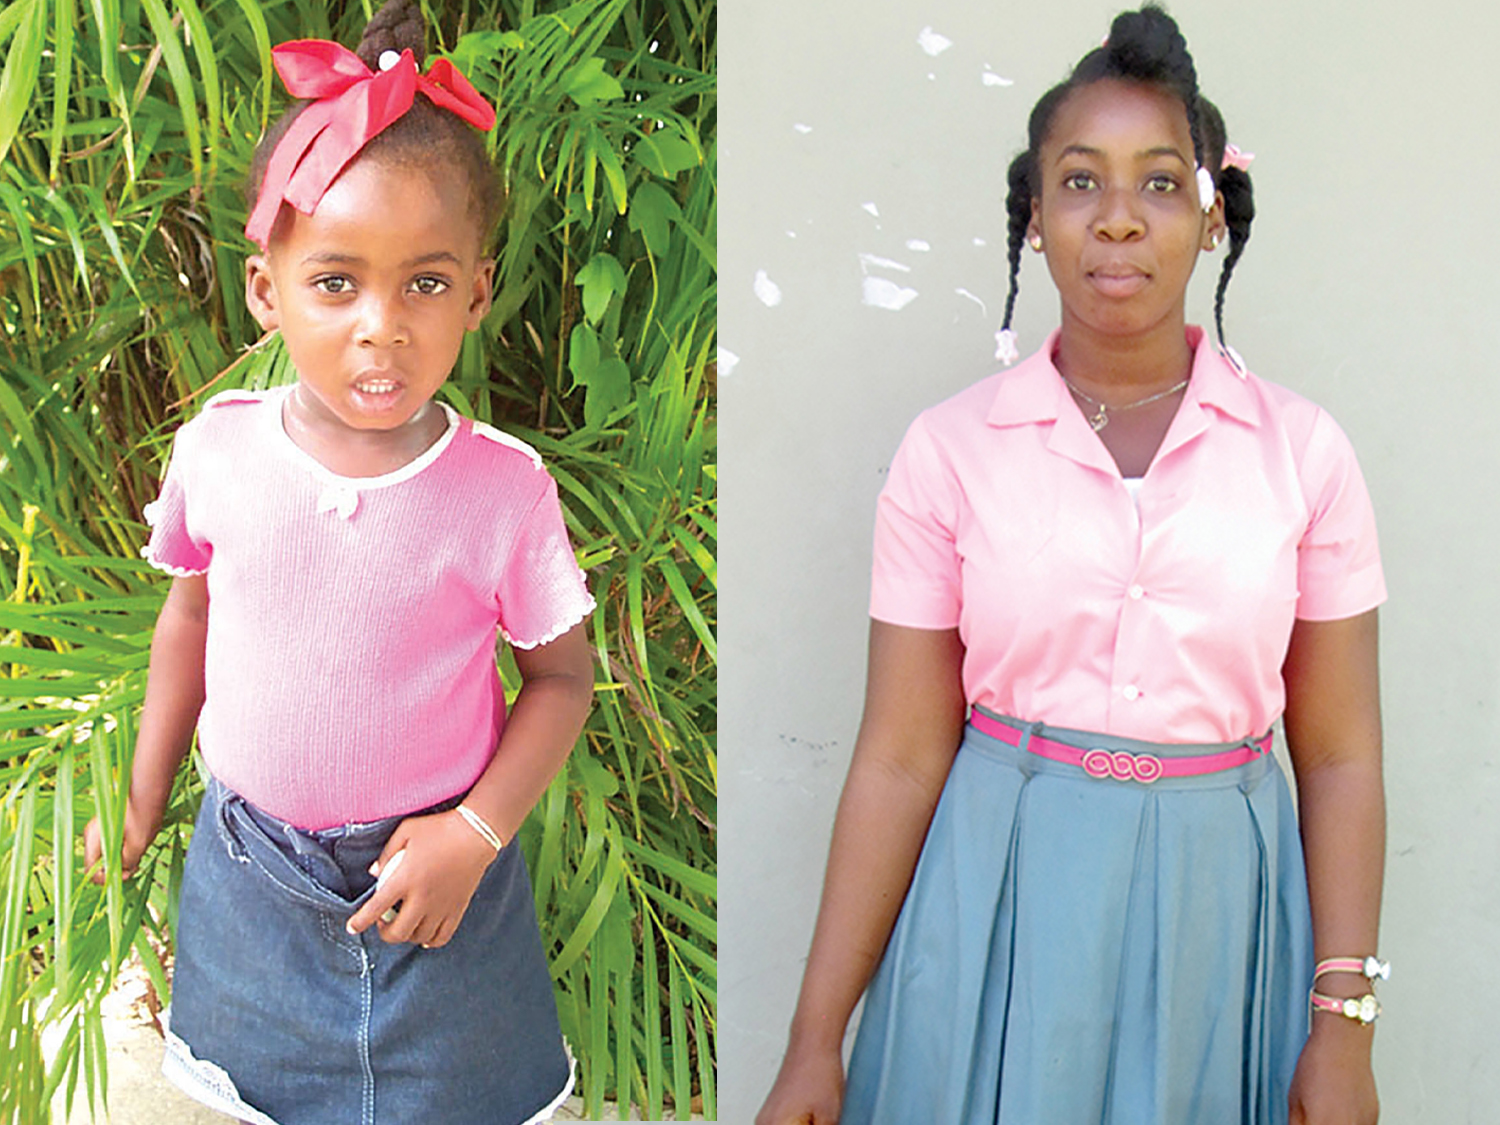 Gloria began school at New Missions at the age of four; as a new, young, Christian leader, she is planning to study nursing in Haiti.